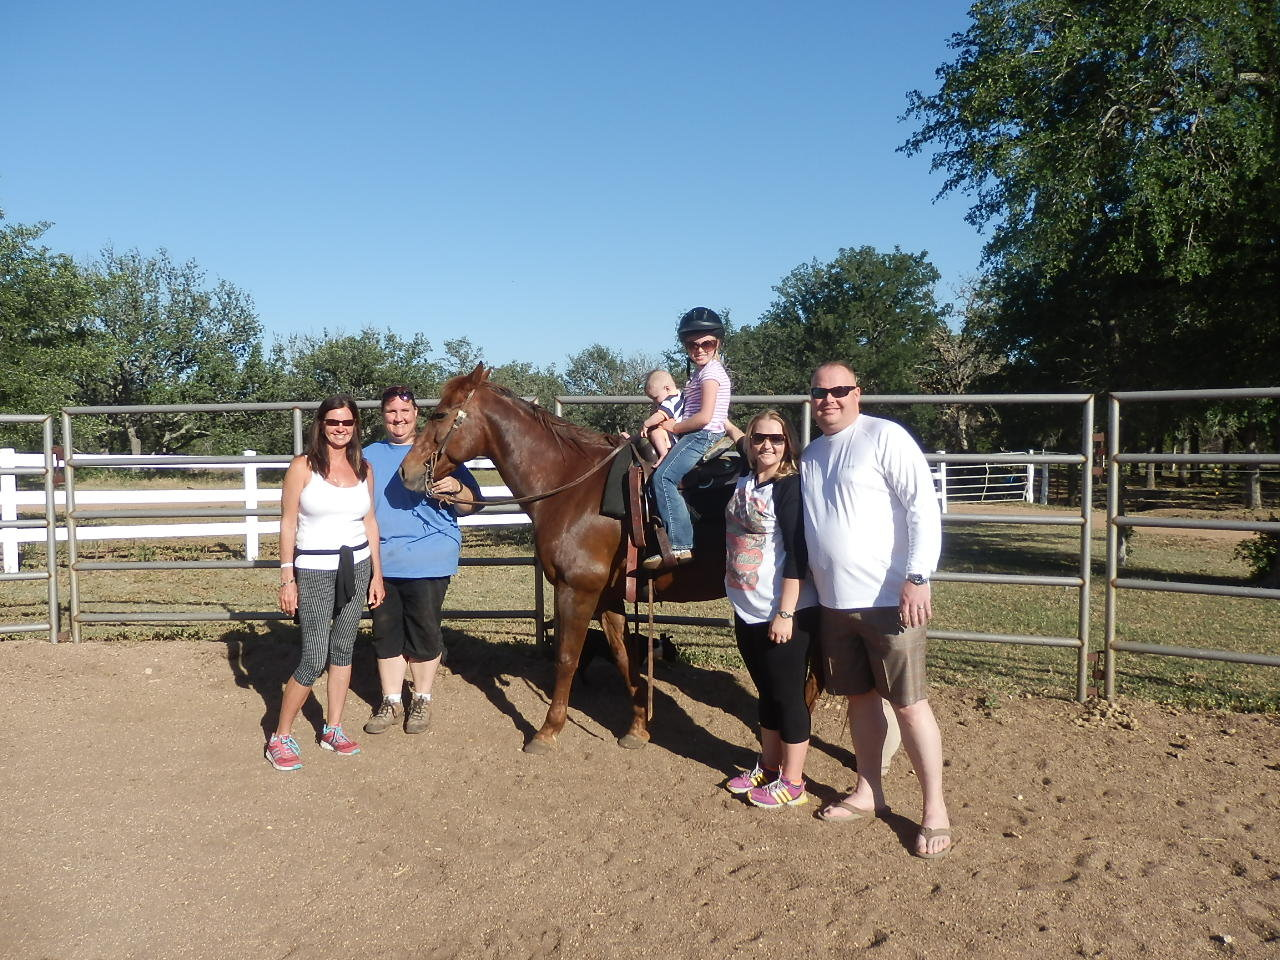 Grandmother and Grandfather, Mom and Dad and my brother  with my new horse!